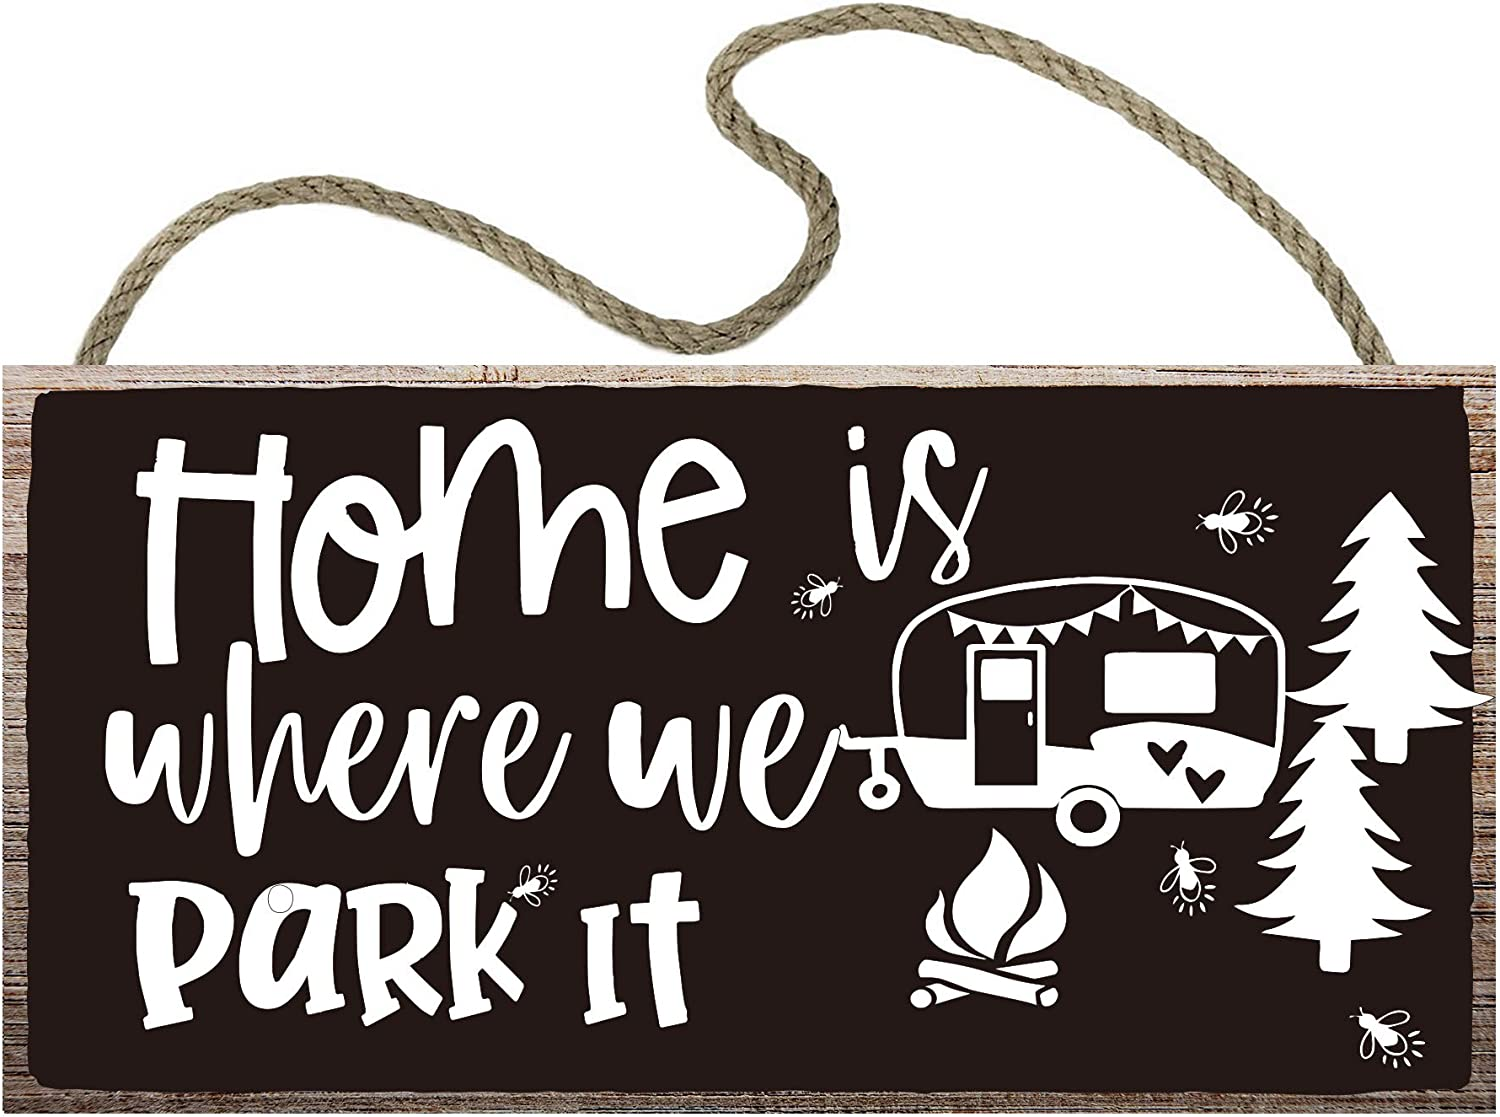 vizuzi Camping Camp Camper Wood Sign,12 x 6,Hanging Plaque Wood Plank Wall Art Decoration, Hunting Camper Room -Home is Where We Park It.